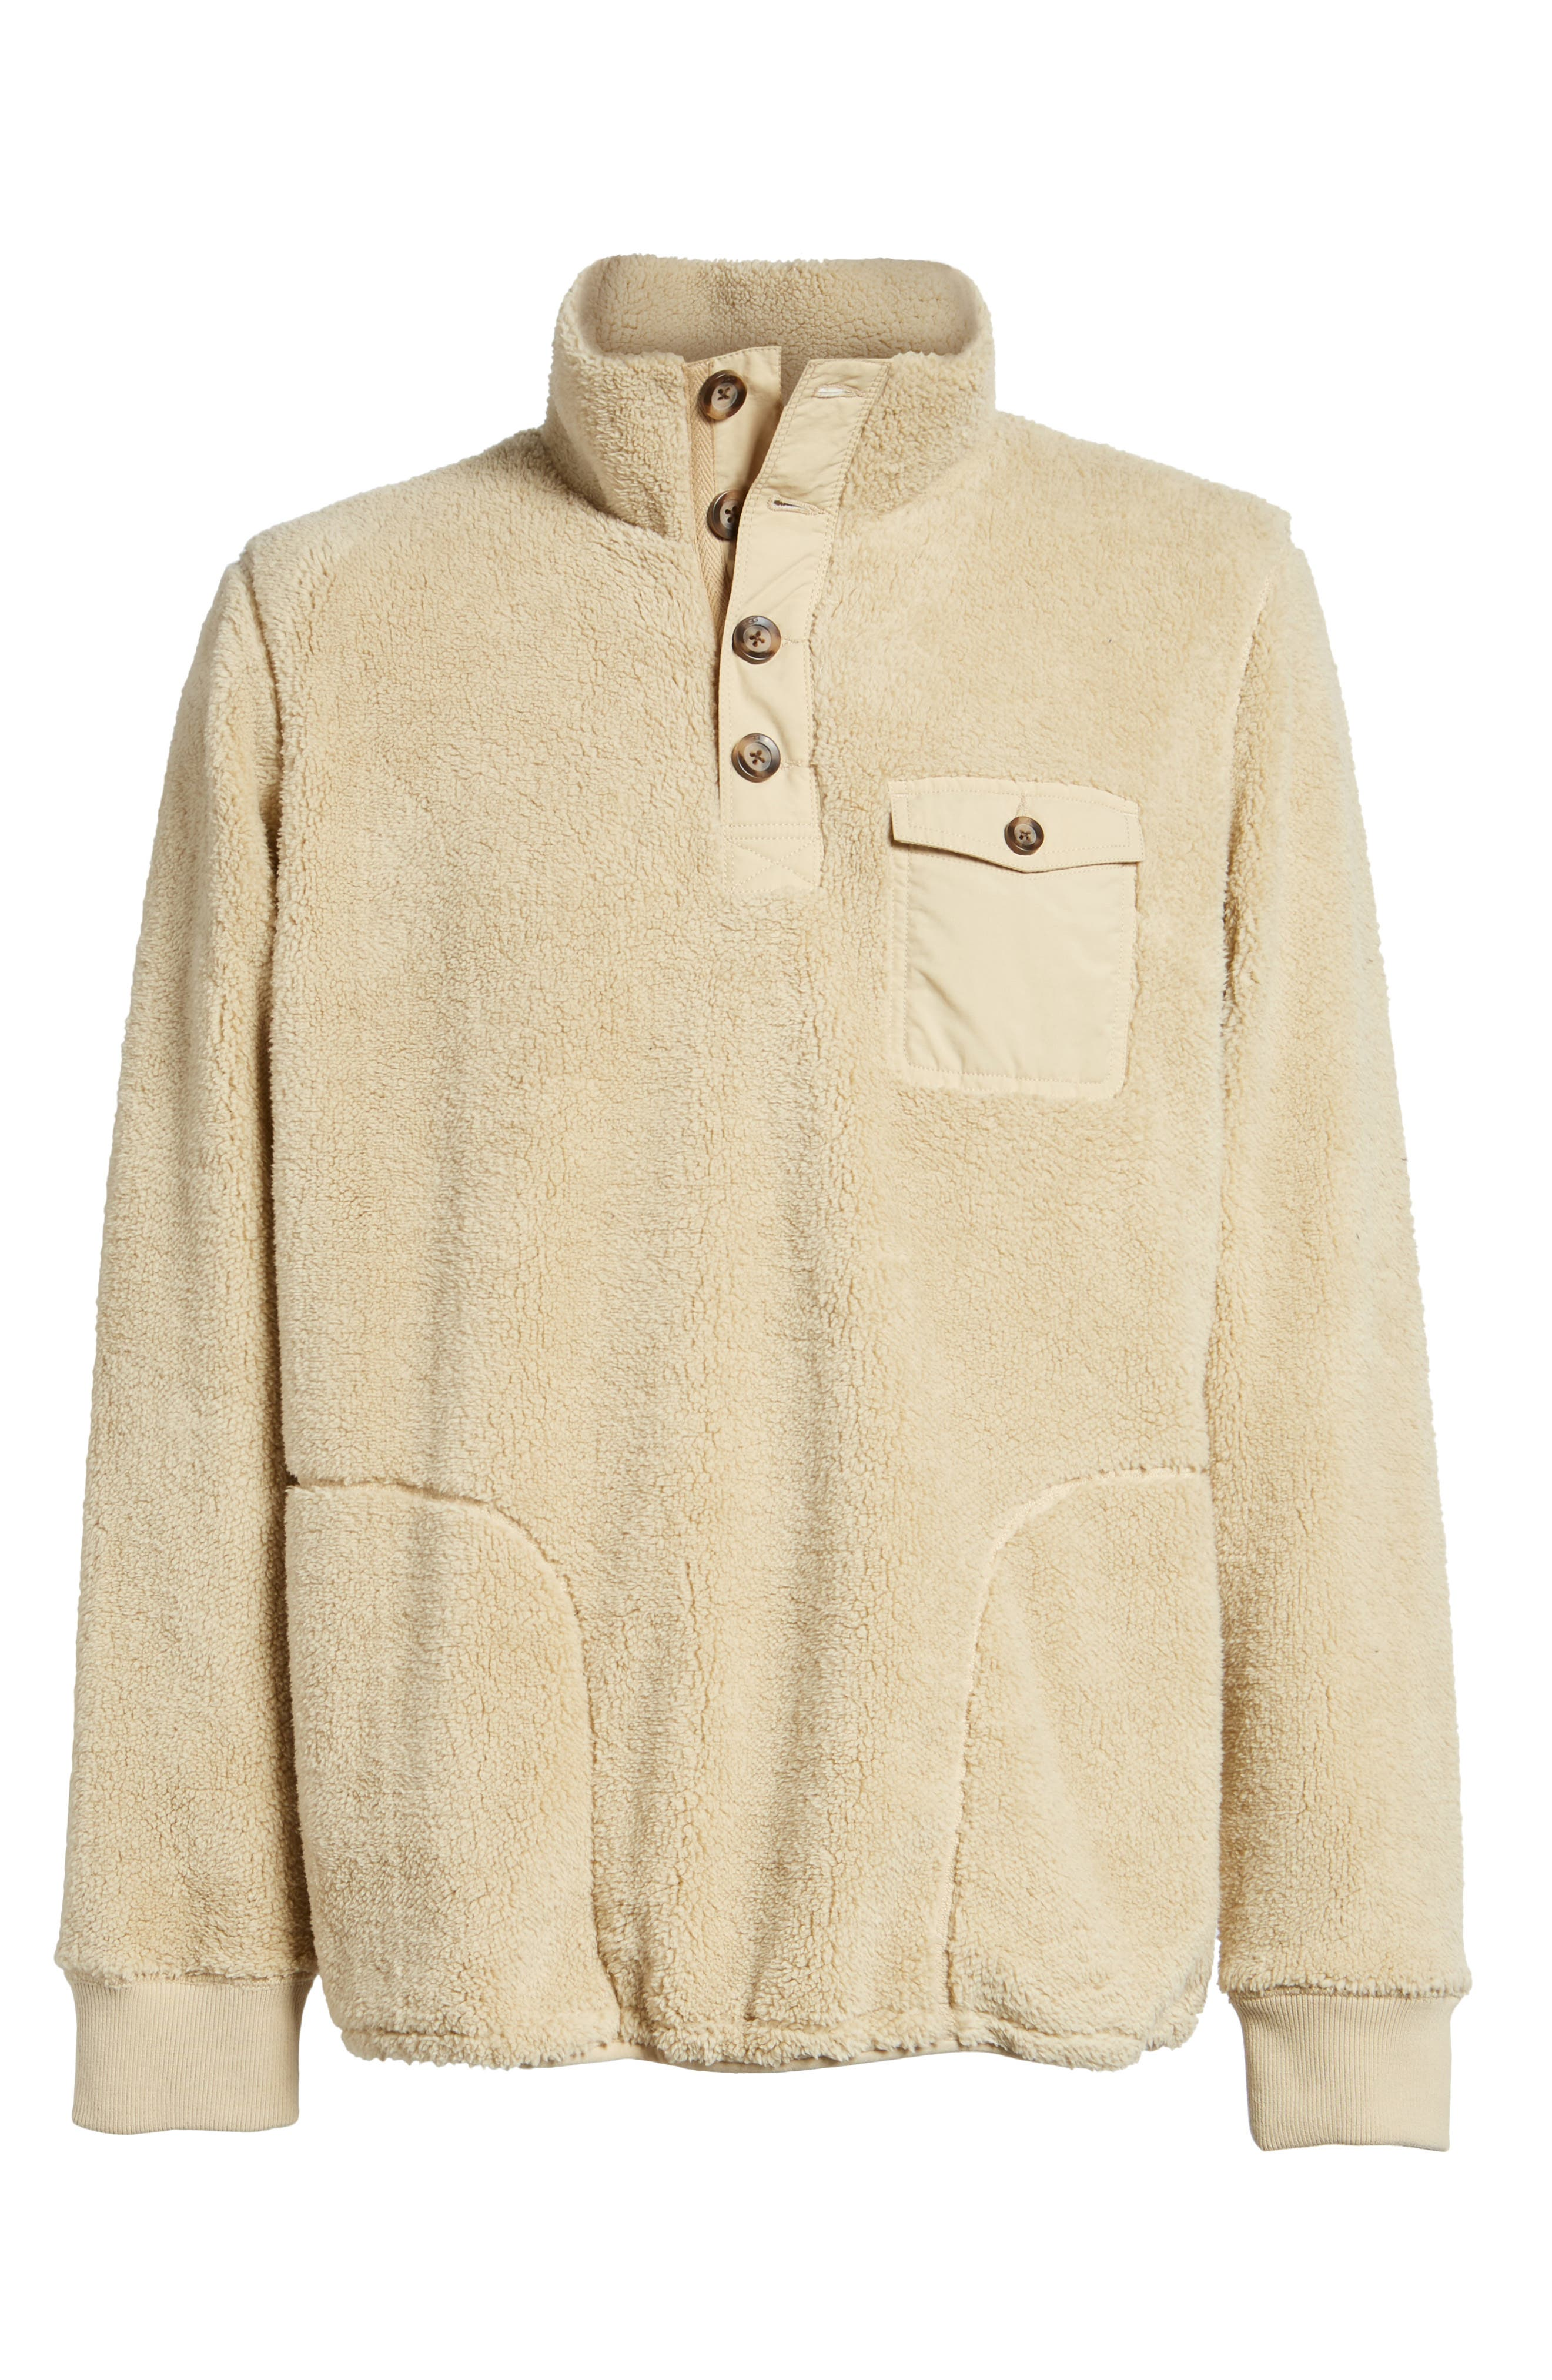 Fuzzy Faux Shearling Pullover,                             Alternate thumbnail 6, color,                             Sand